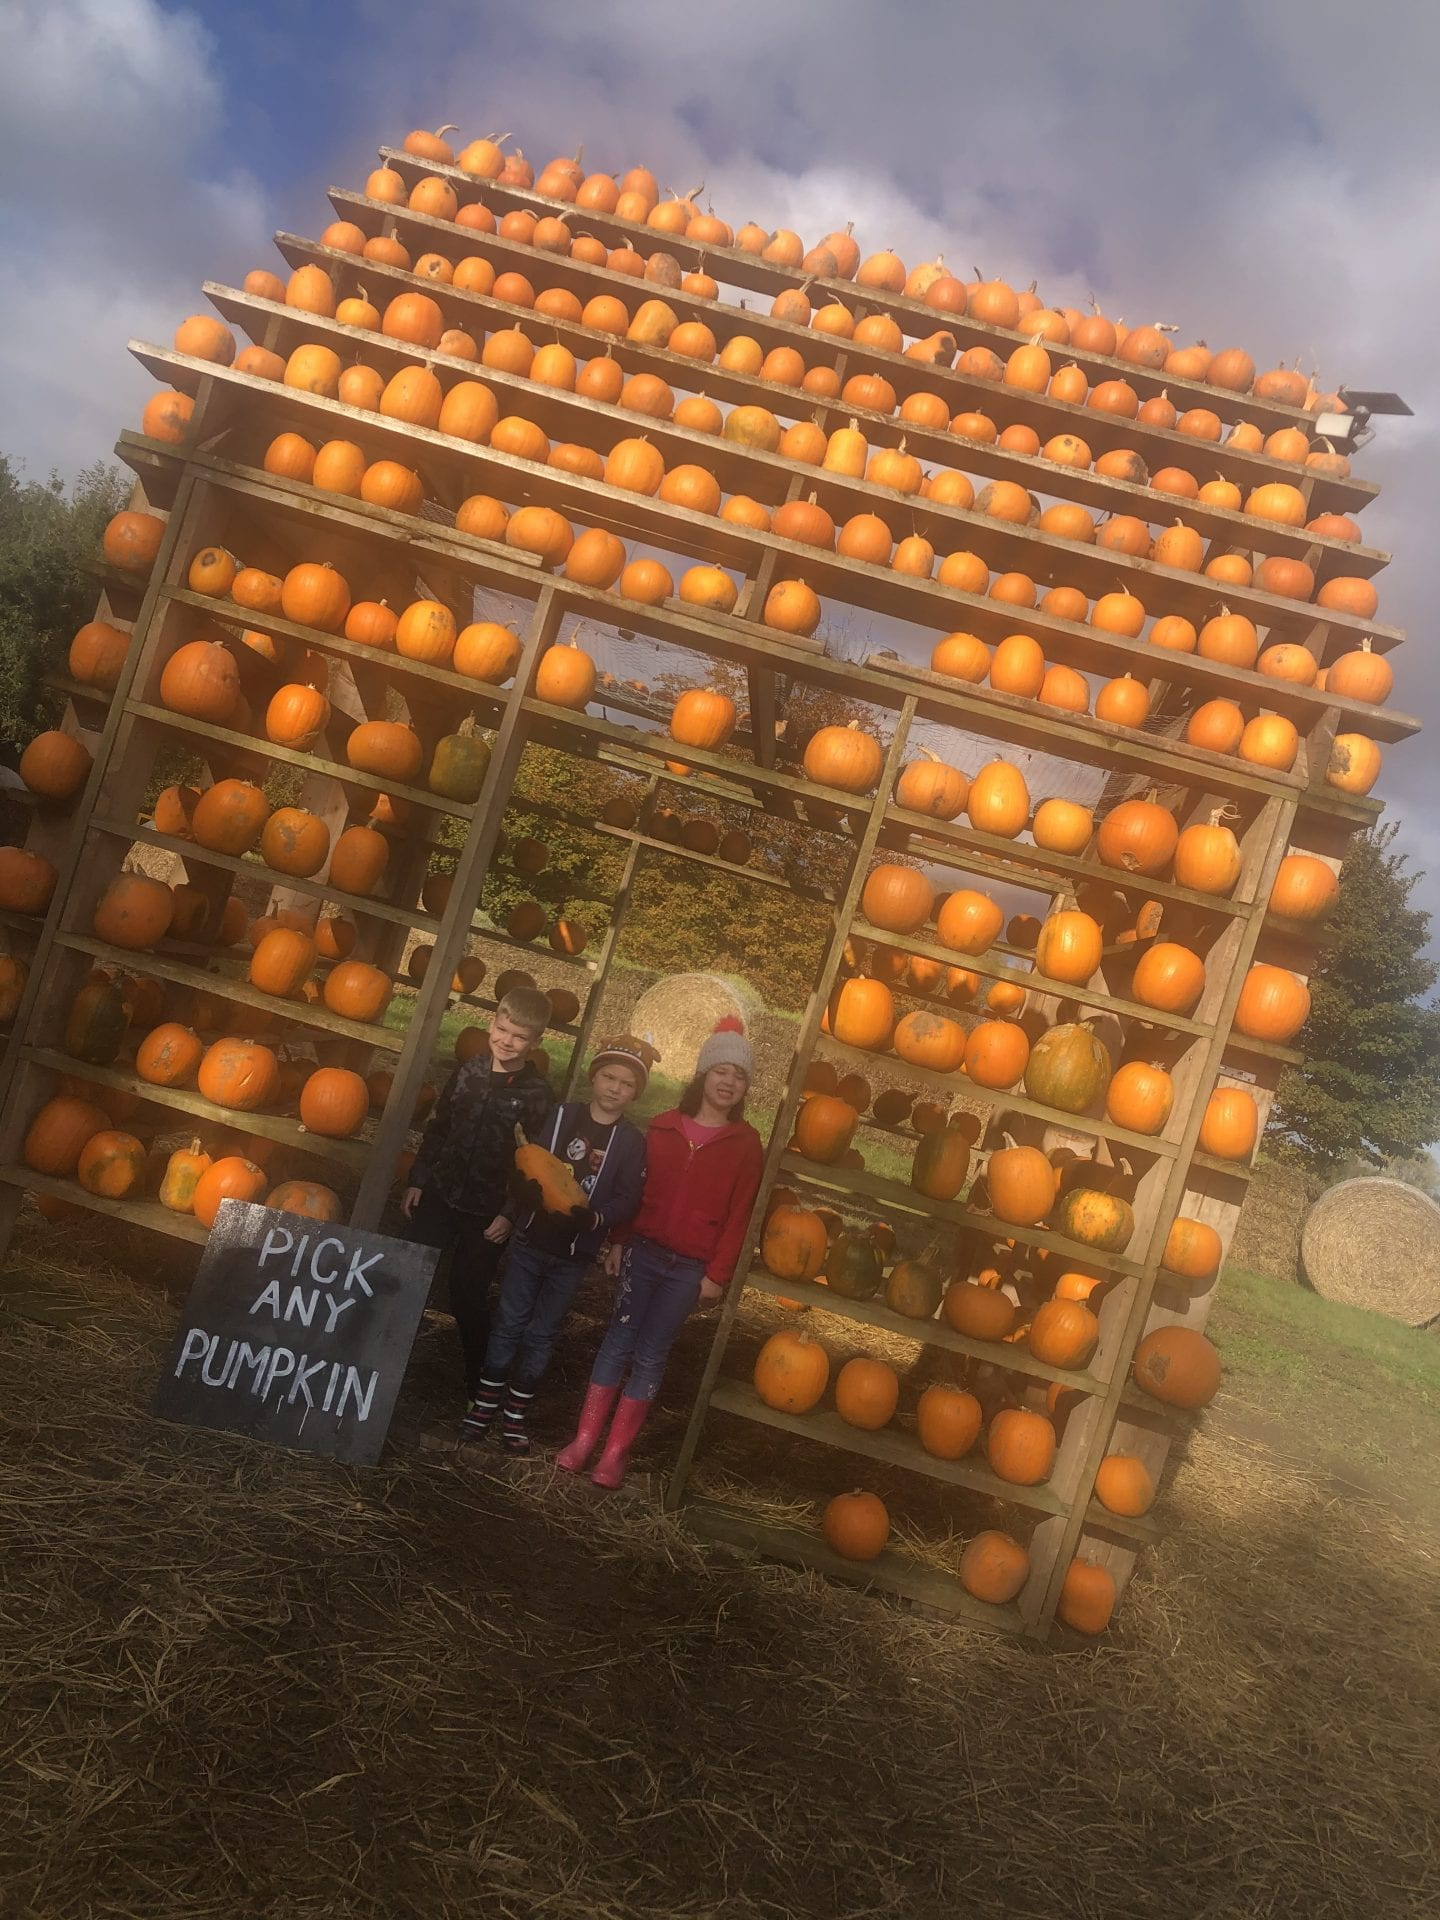 3 children standing in the entance of the 'Pumpkin House'